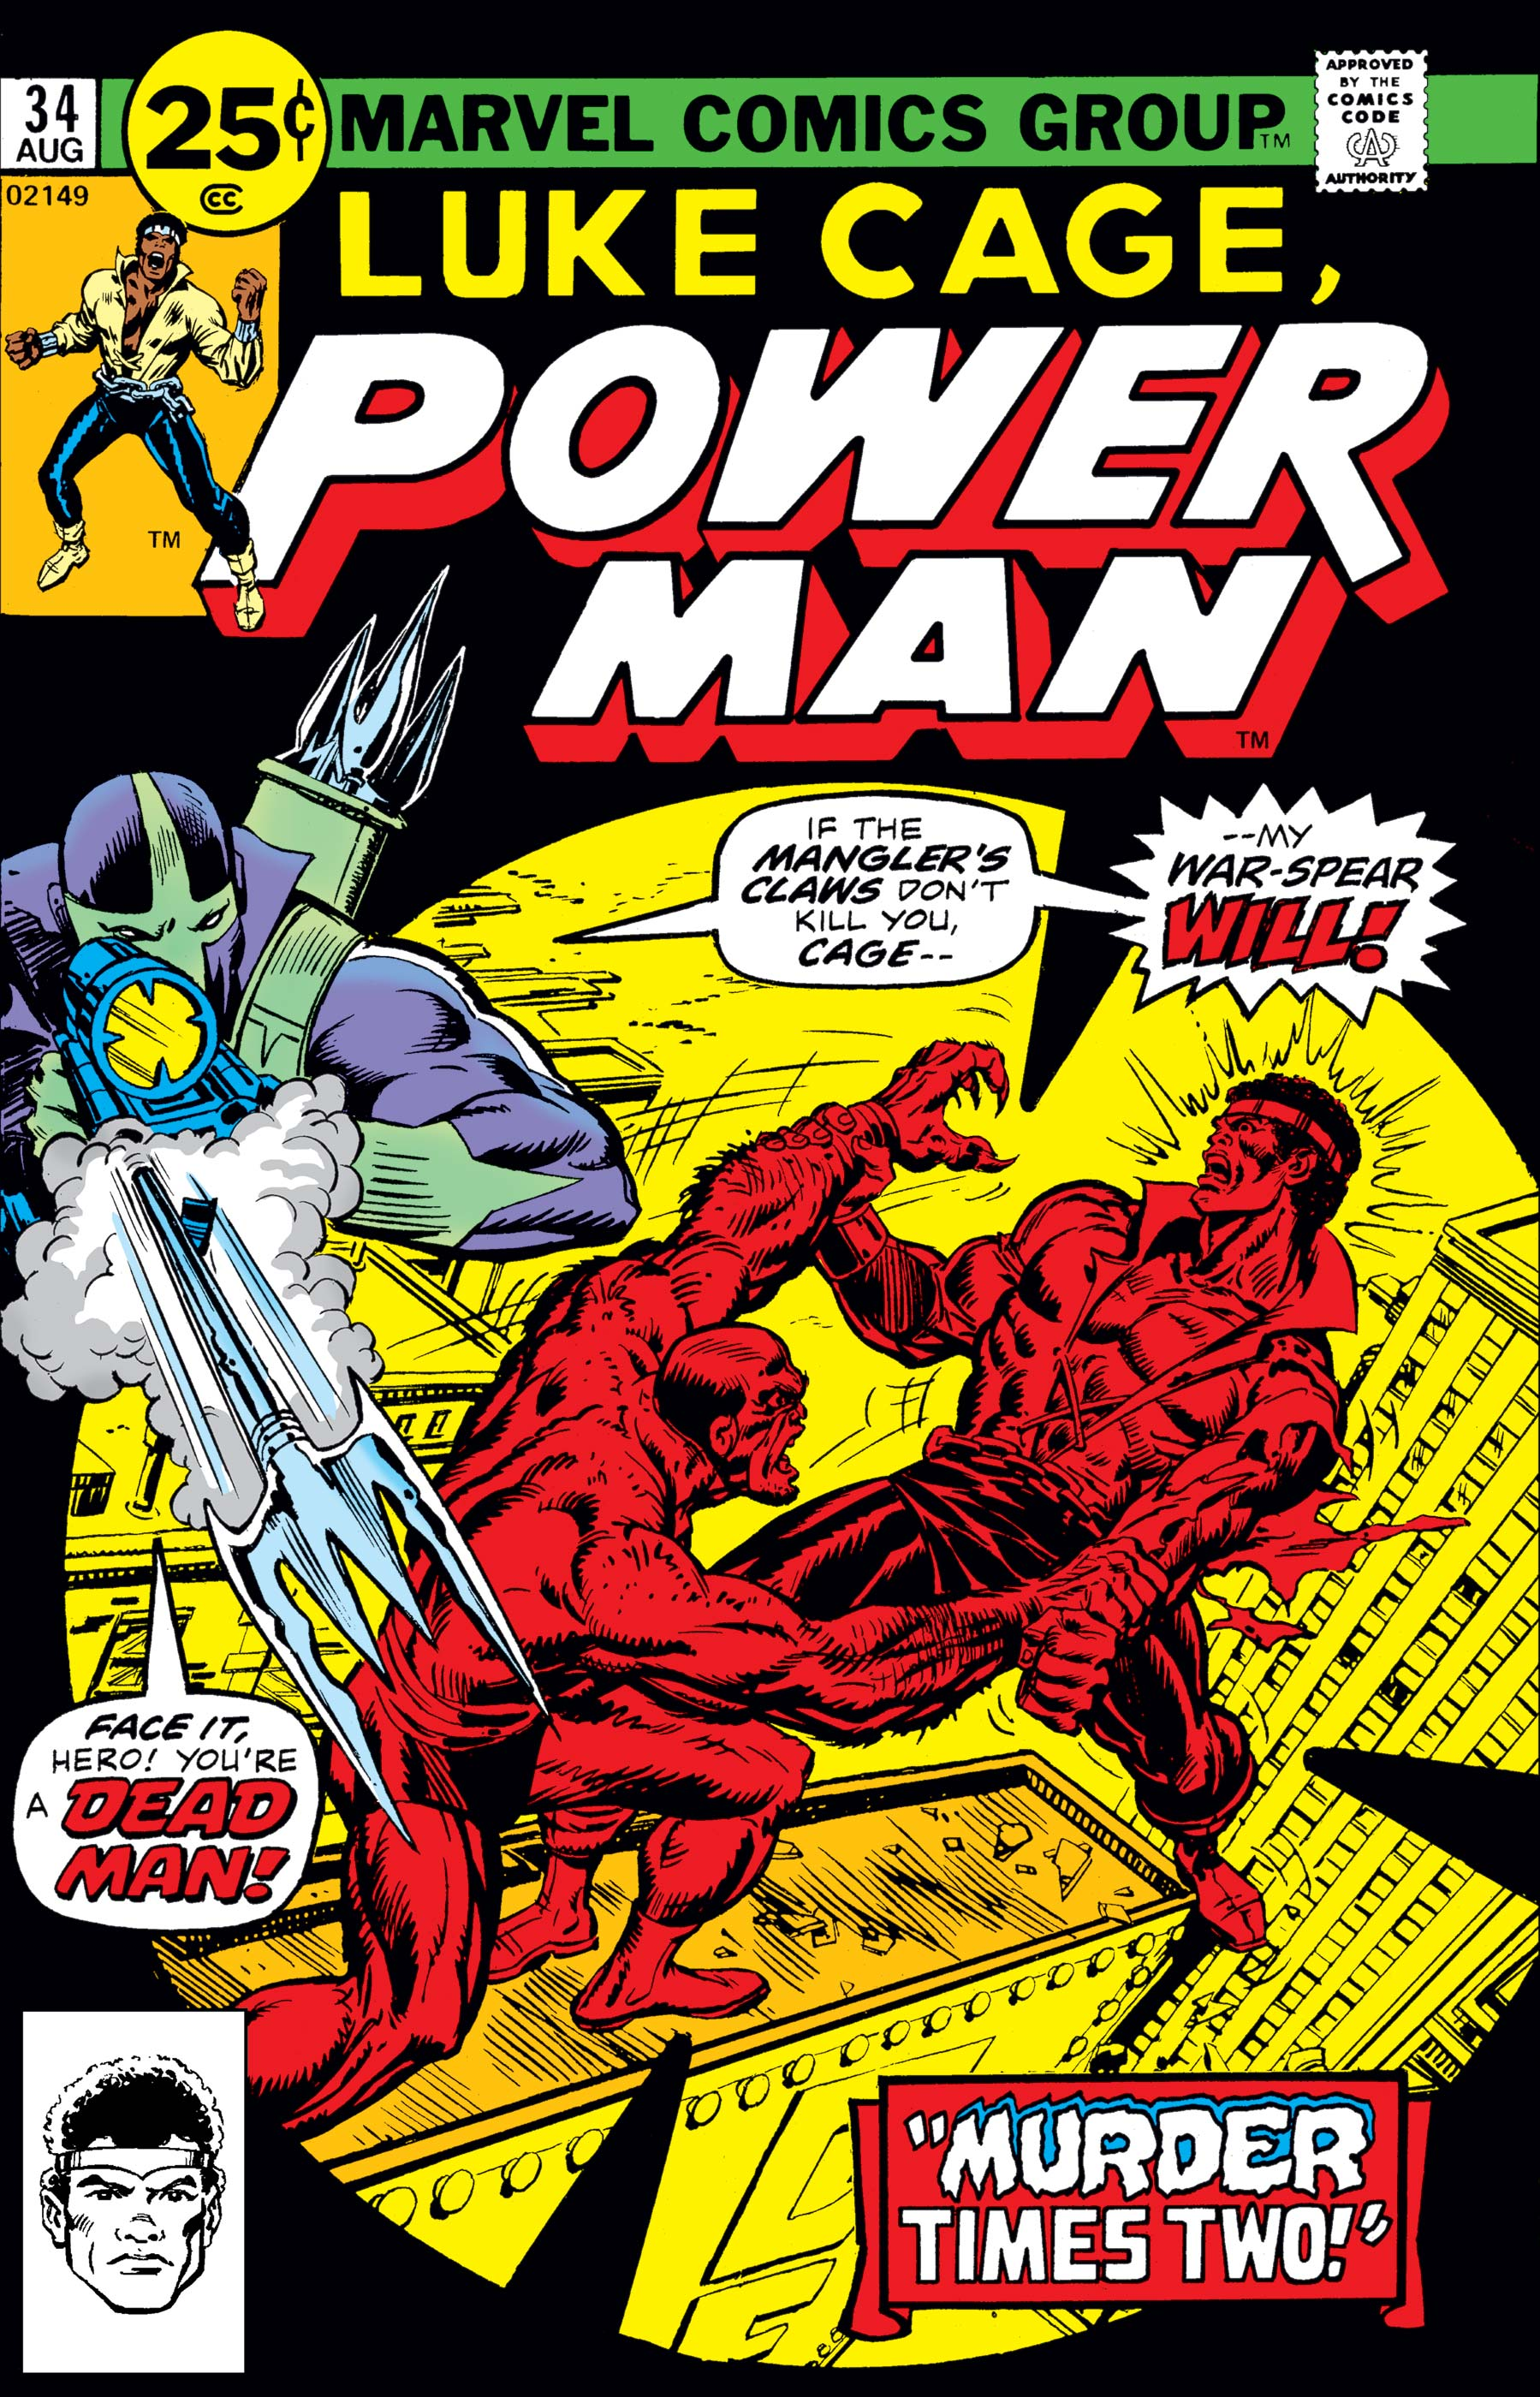 Power Man (1974) #34